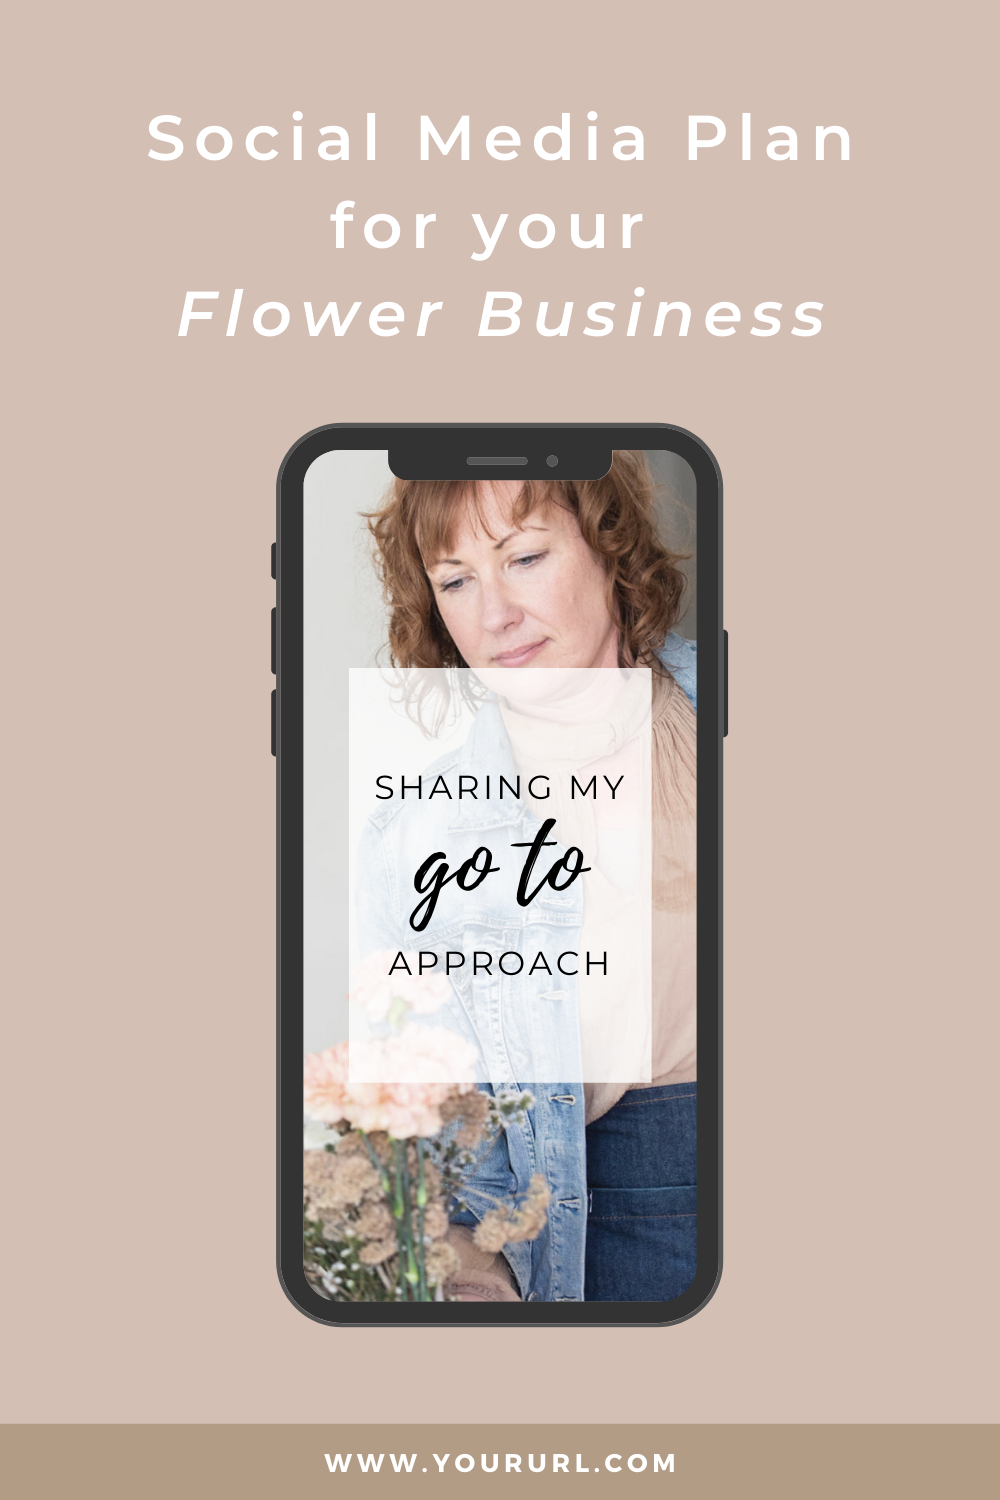 How to Create a Social Media Plan for Your Flower Business